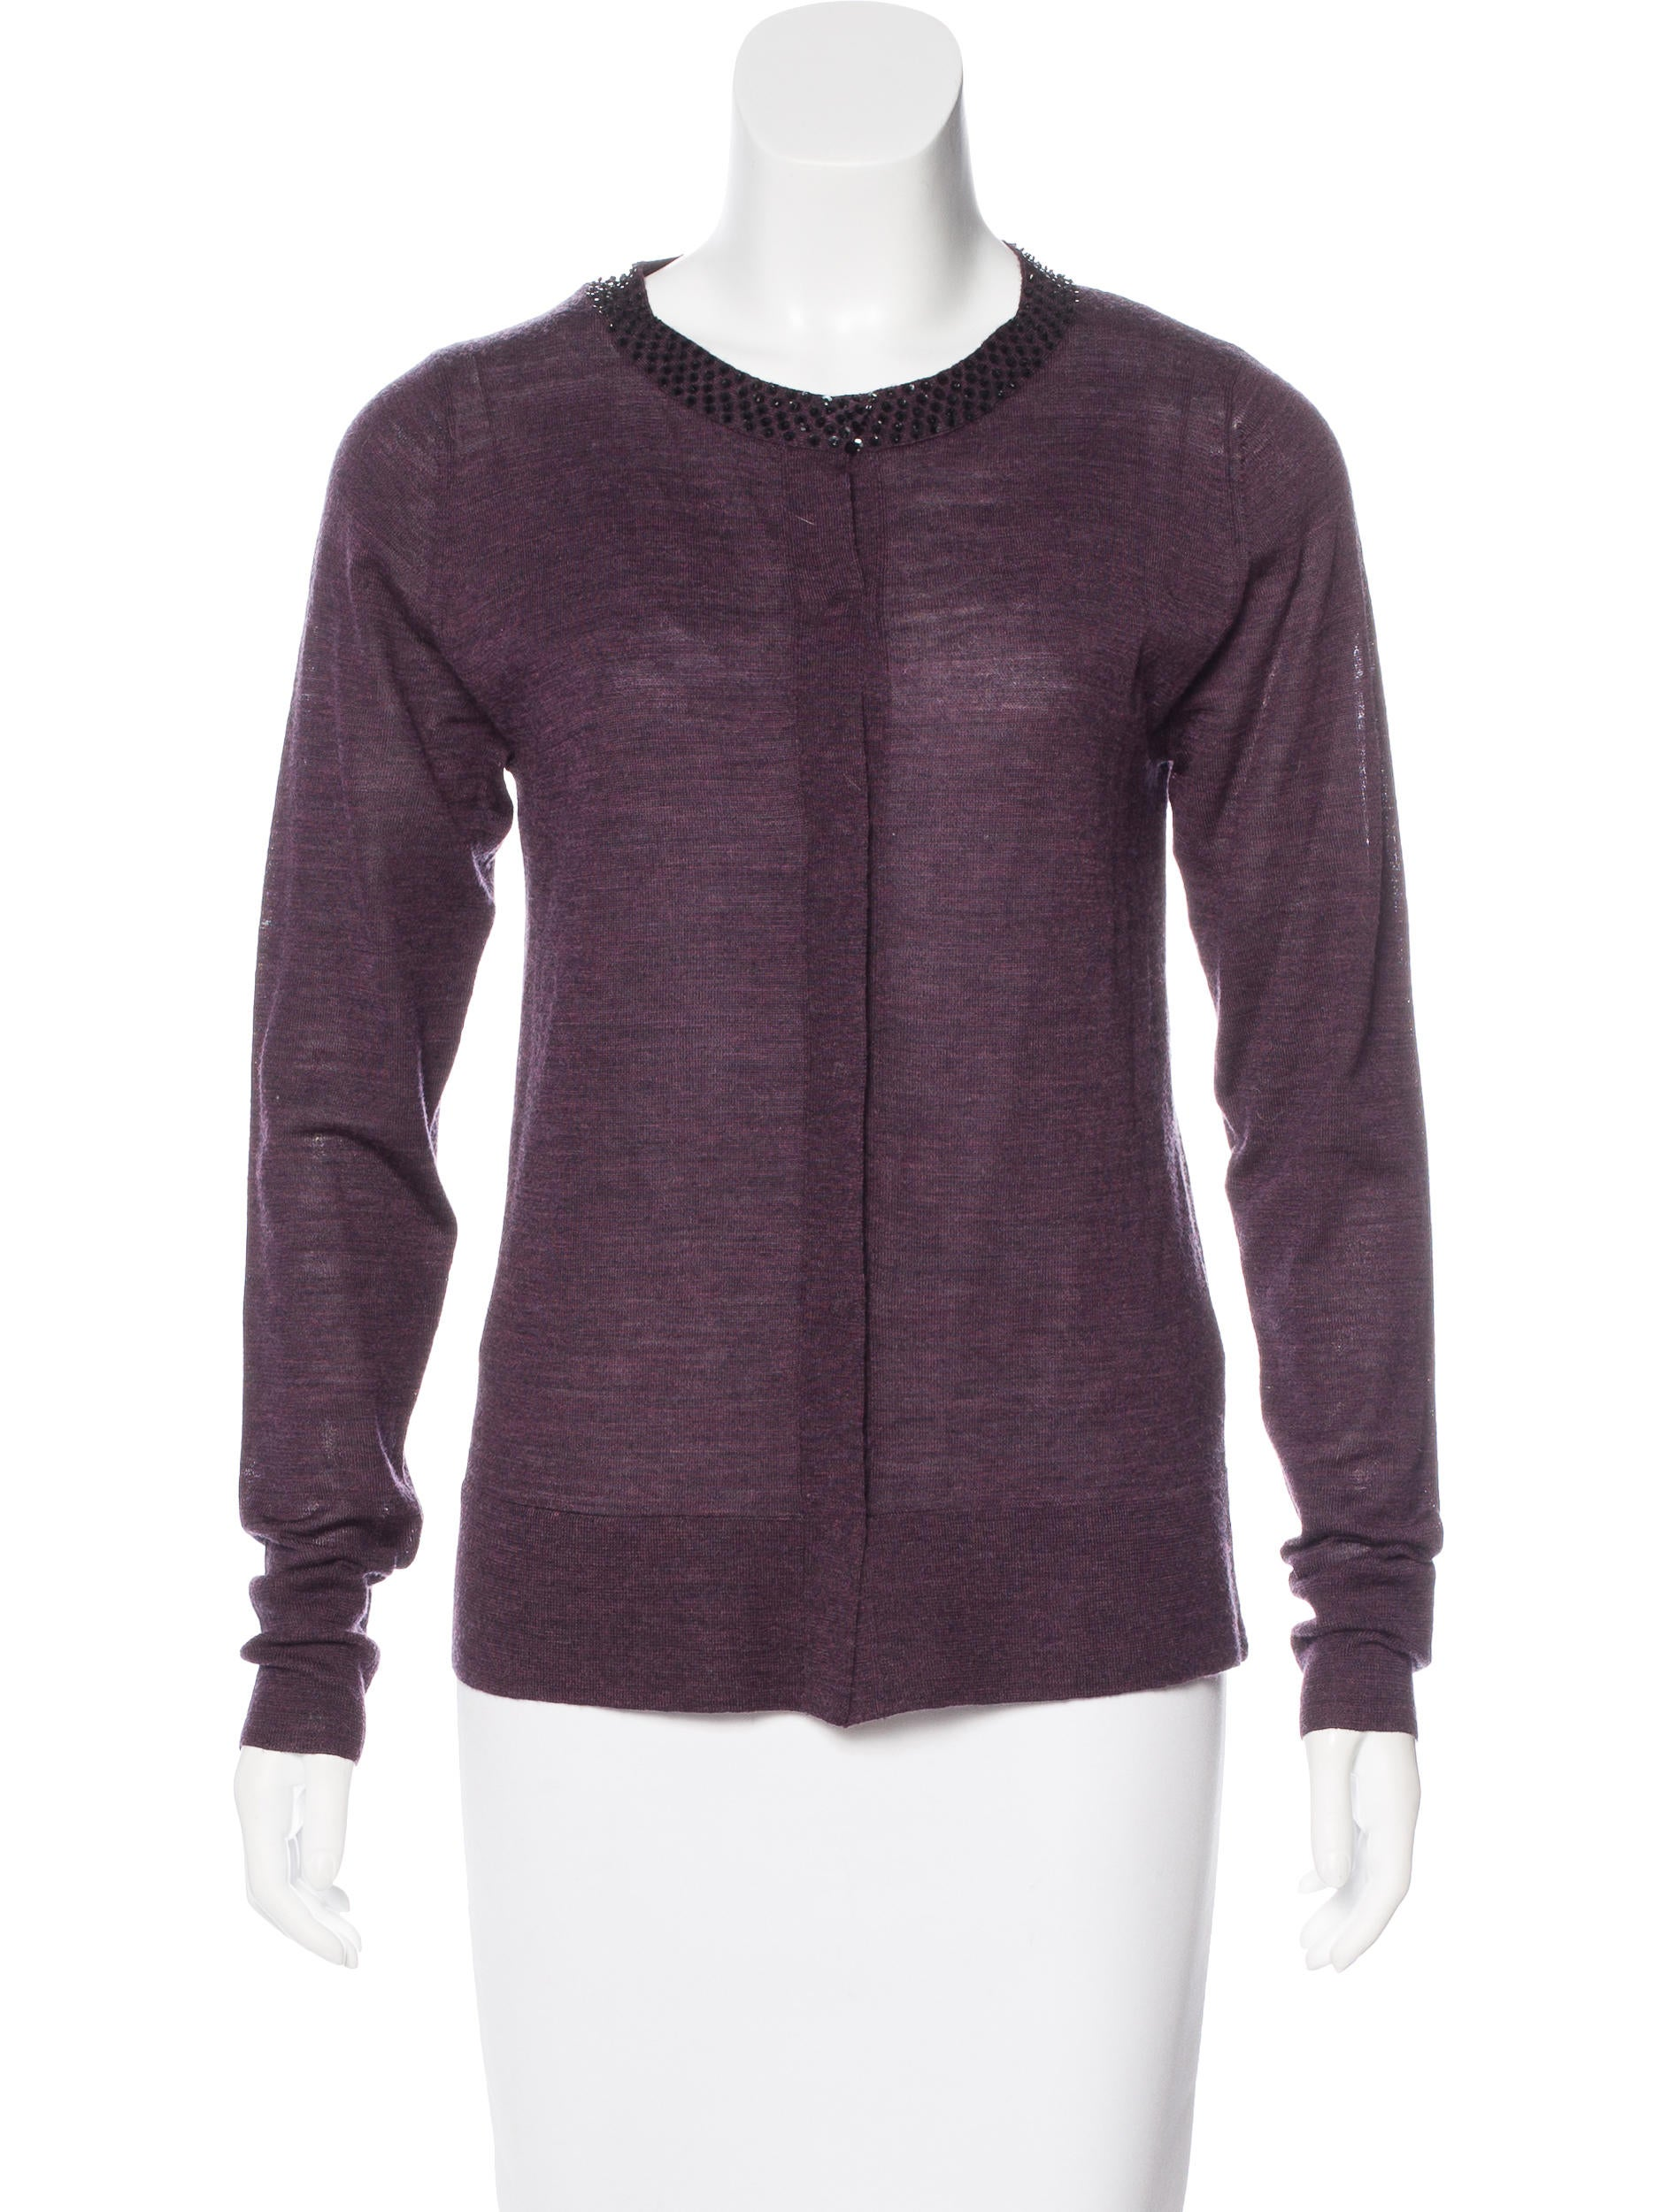 Robert rodriguez merino wool embellished cardigan for Merino wool shirt womens